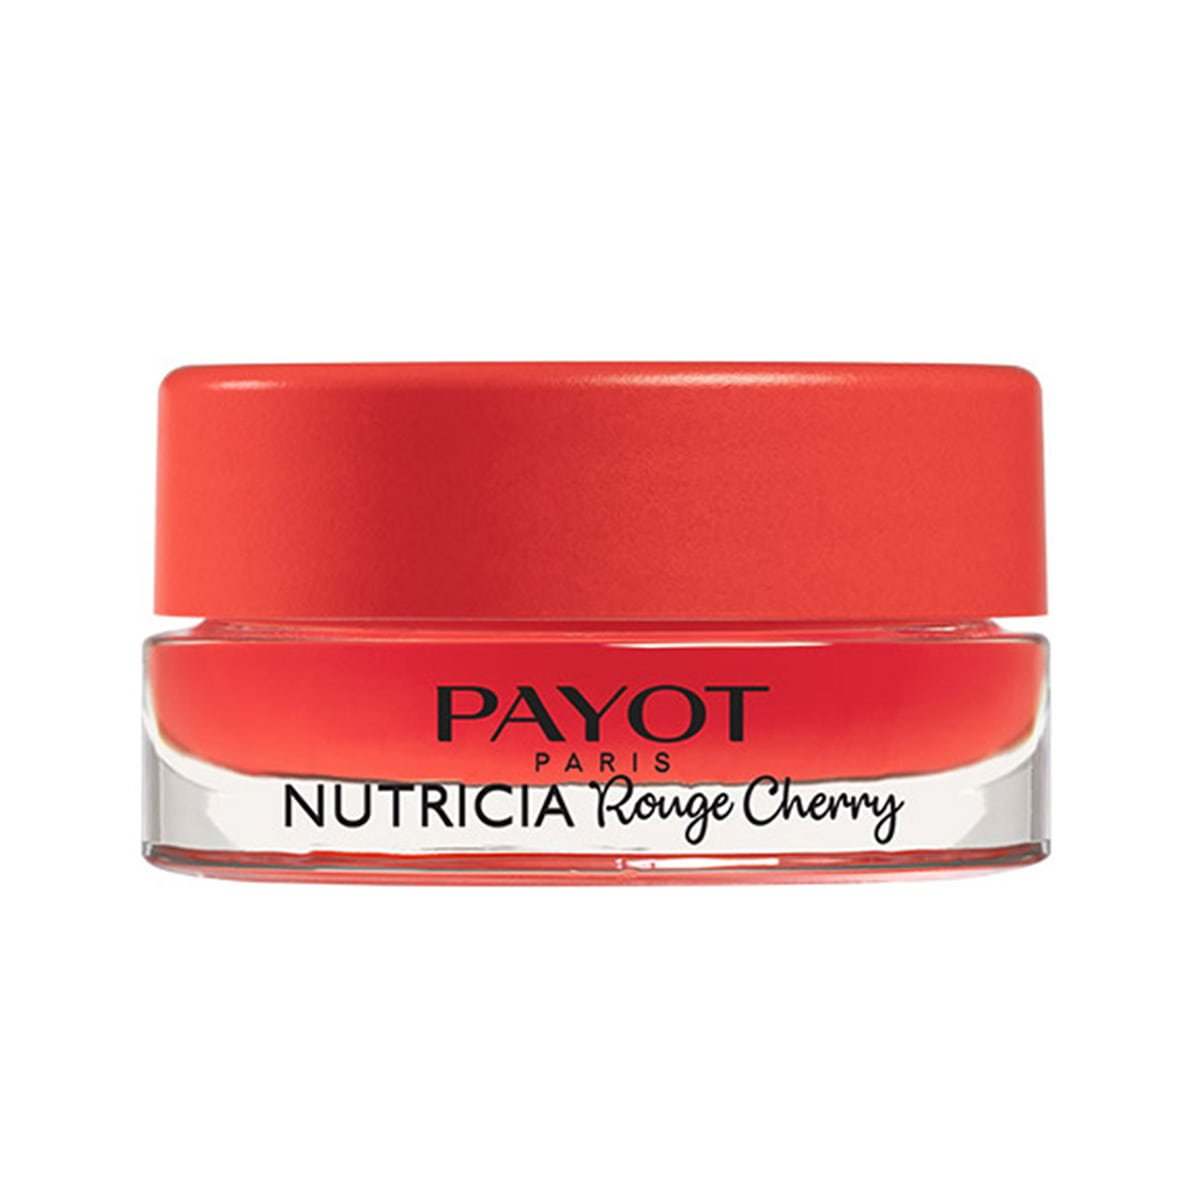 Payot - Nutricia Rouge Cherry - Soin nourrissant sublimant